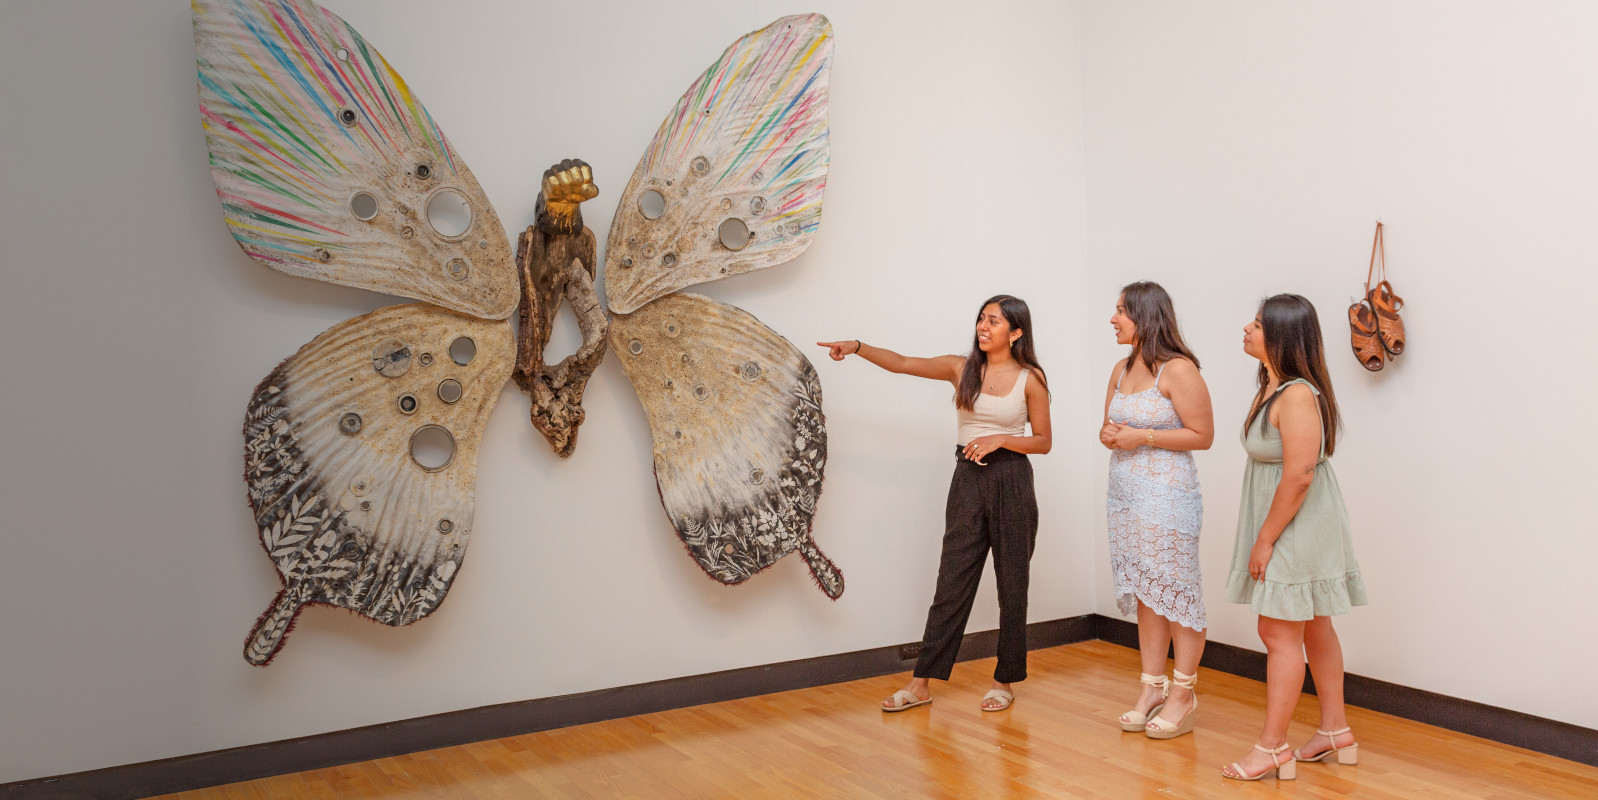 Students with Mariposa/Butterfly